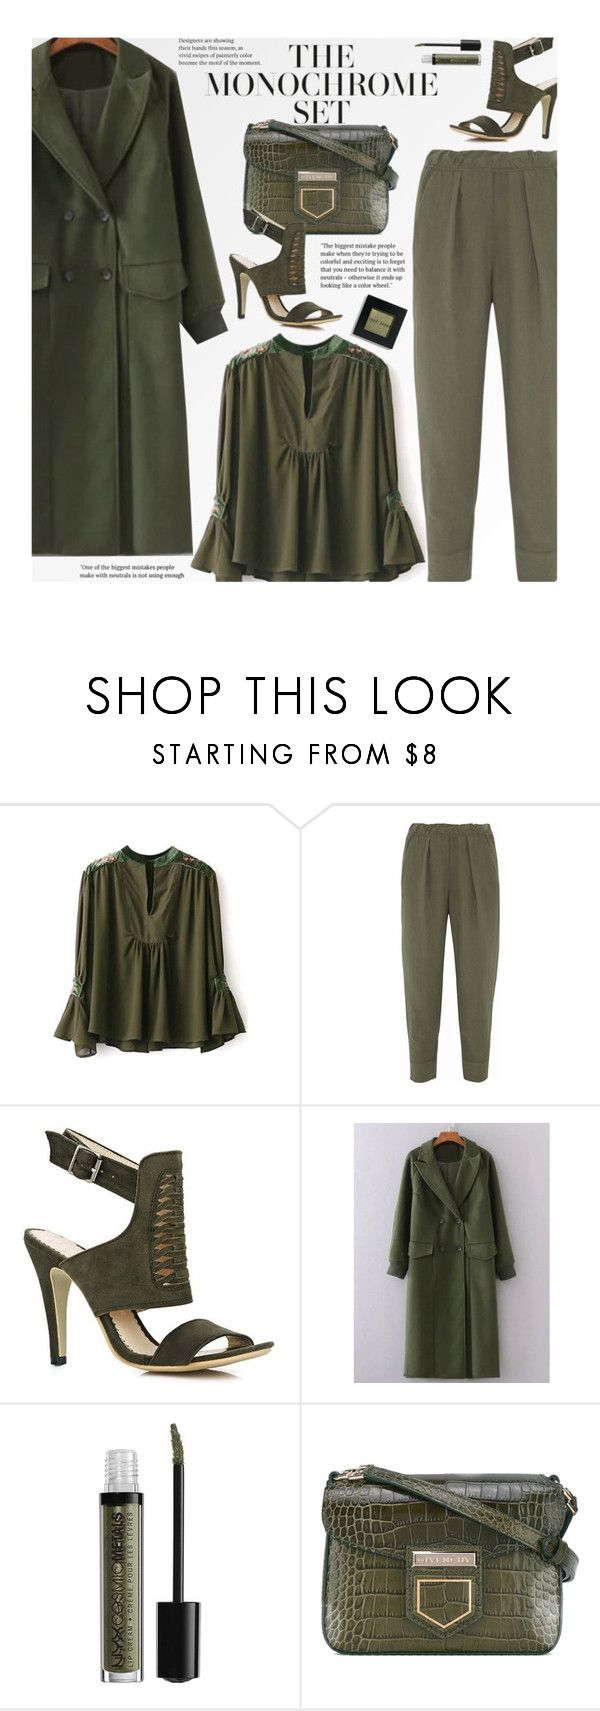 """One Color, Head to Toe"" by beebeely-look ❤ liked on Polyvore featuring Raquel Allegra, NYX, Givenchy, Bobbi Brown Cosmetics, WorkWear, monochrome, ruffles, StreetChic and twinkledeals"